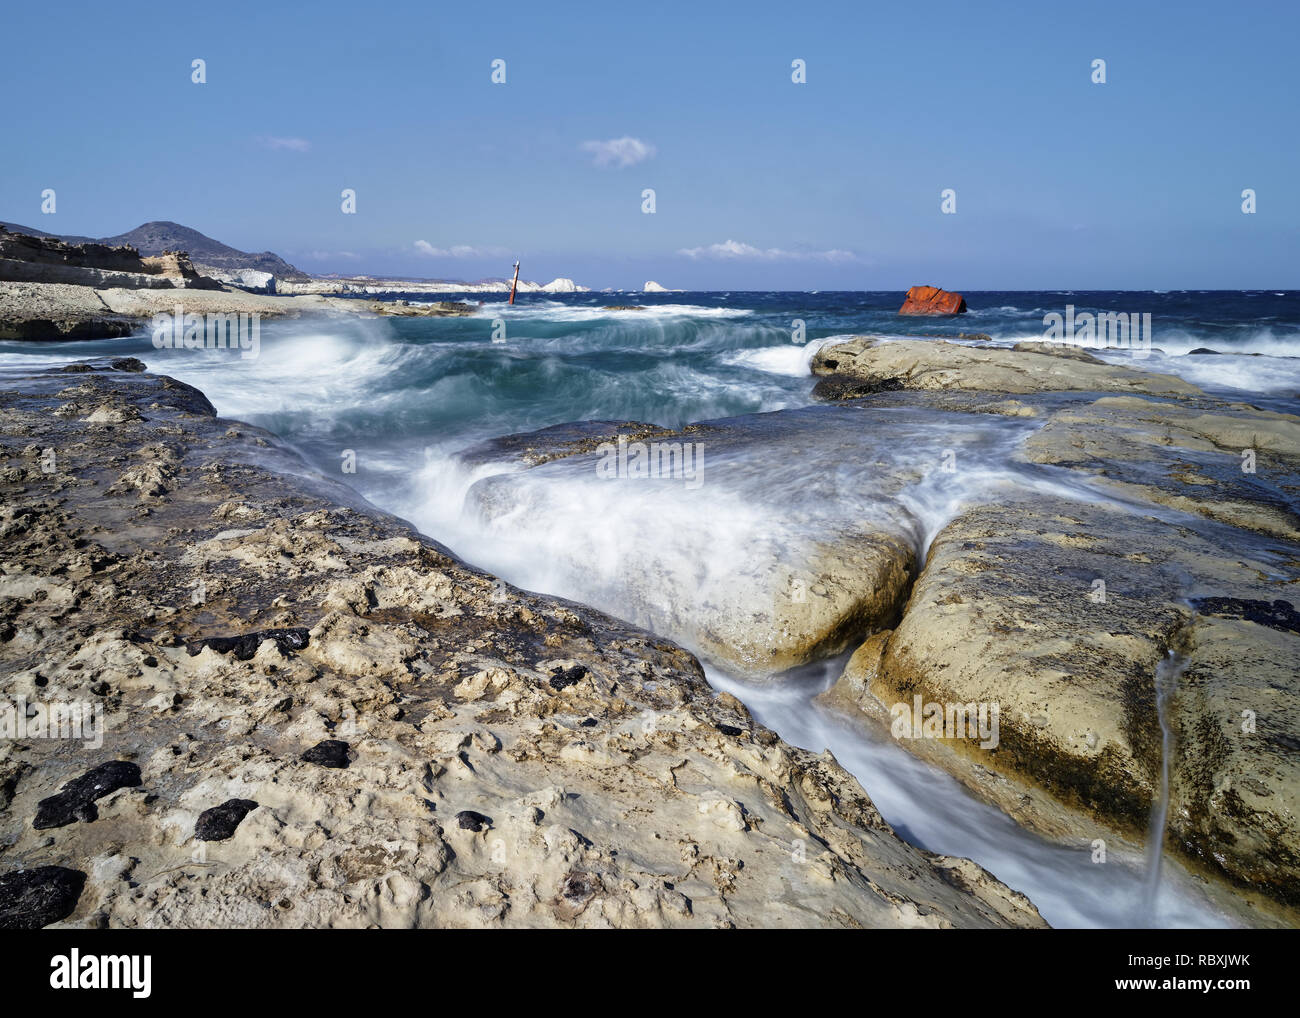 In strong wind high waves flow over large plates on a beach of light rock, water movement in long exposure, in the background a shipwreck - Location:  - Stock Image